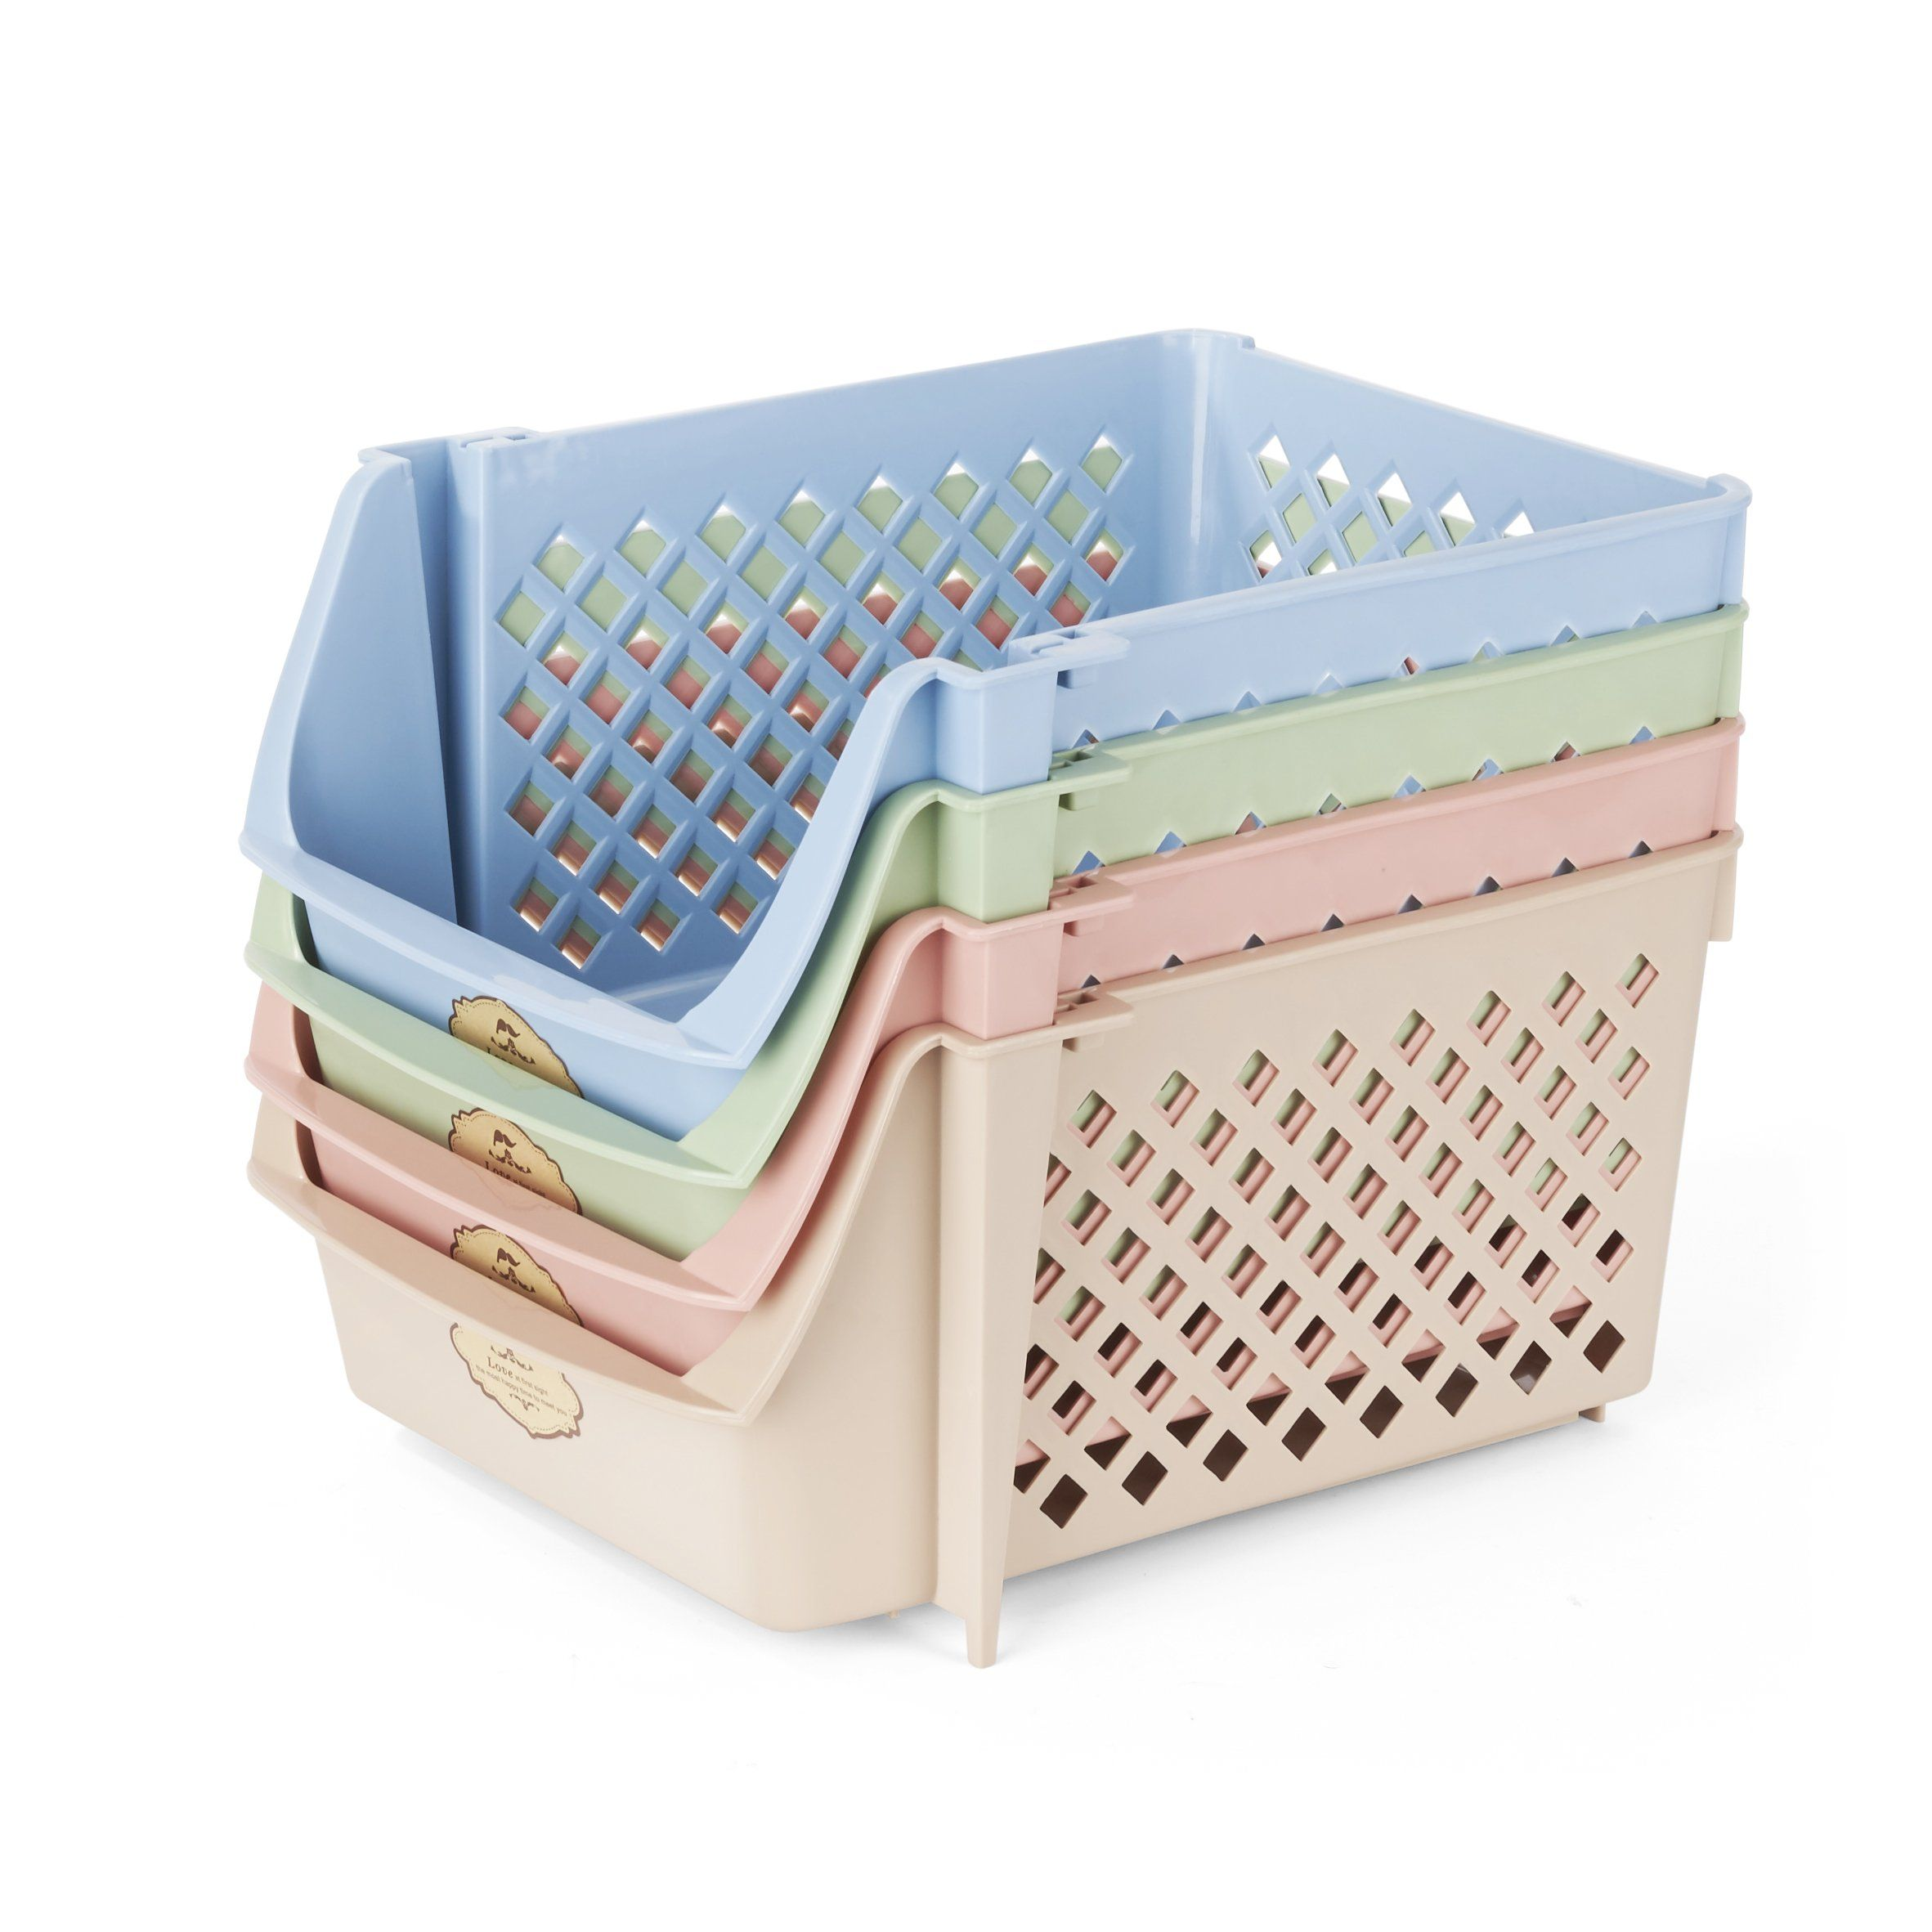 Titan Mall Storage Bins Plastic Stackable Storage Bins For Food Fruits Files Mixed Color Storage Baske Stackable Storage Bins Plastic Storage Bins Storage Bins